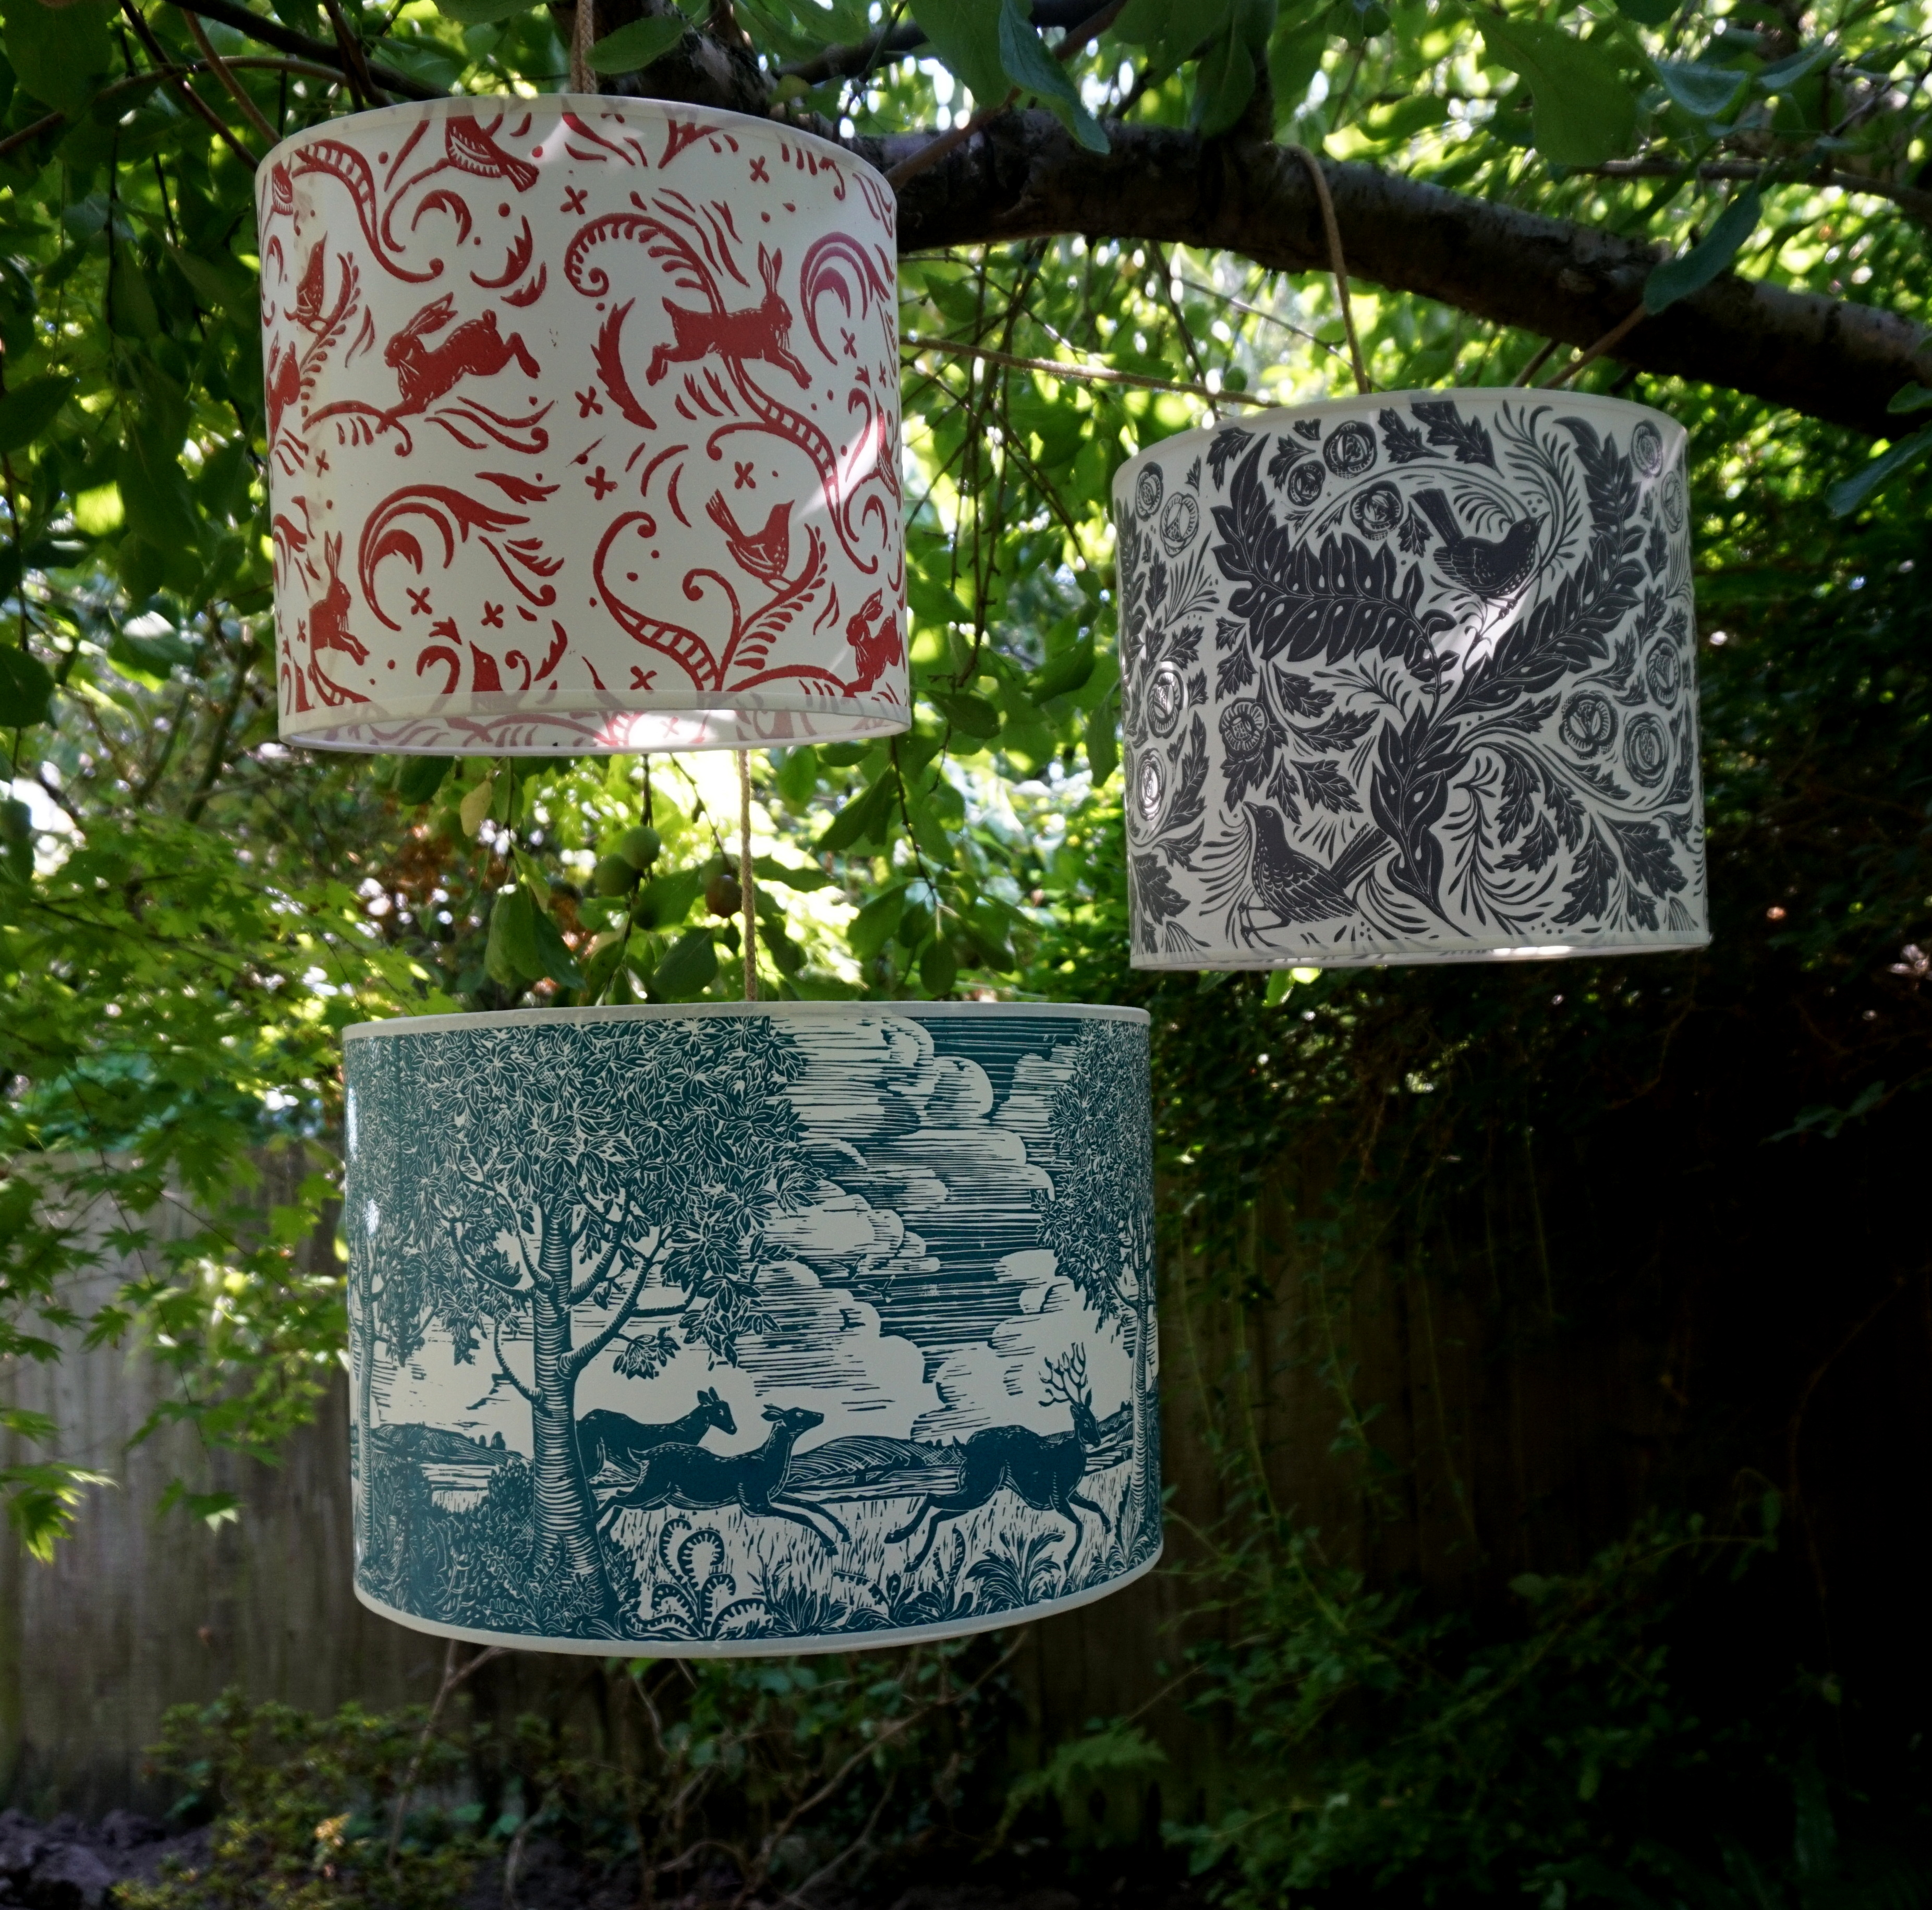 Handprinted lampshades